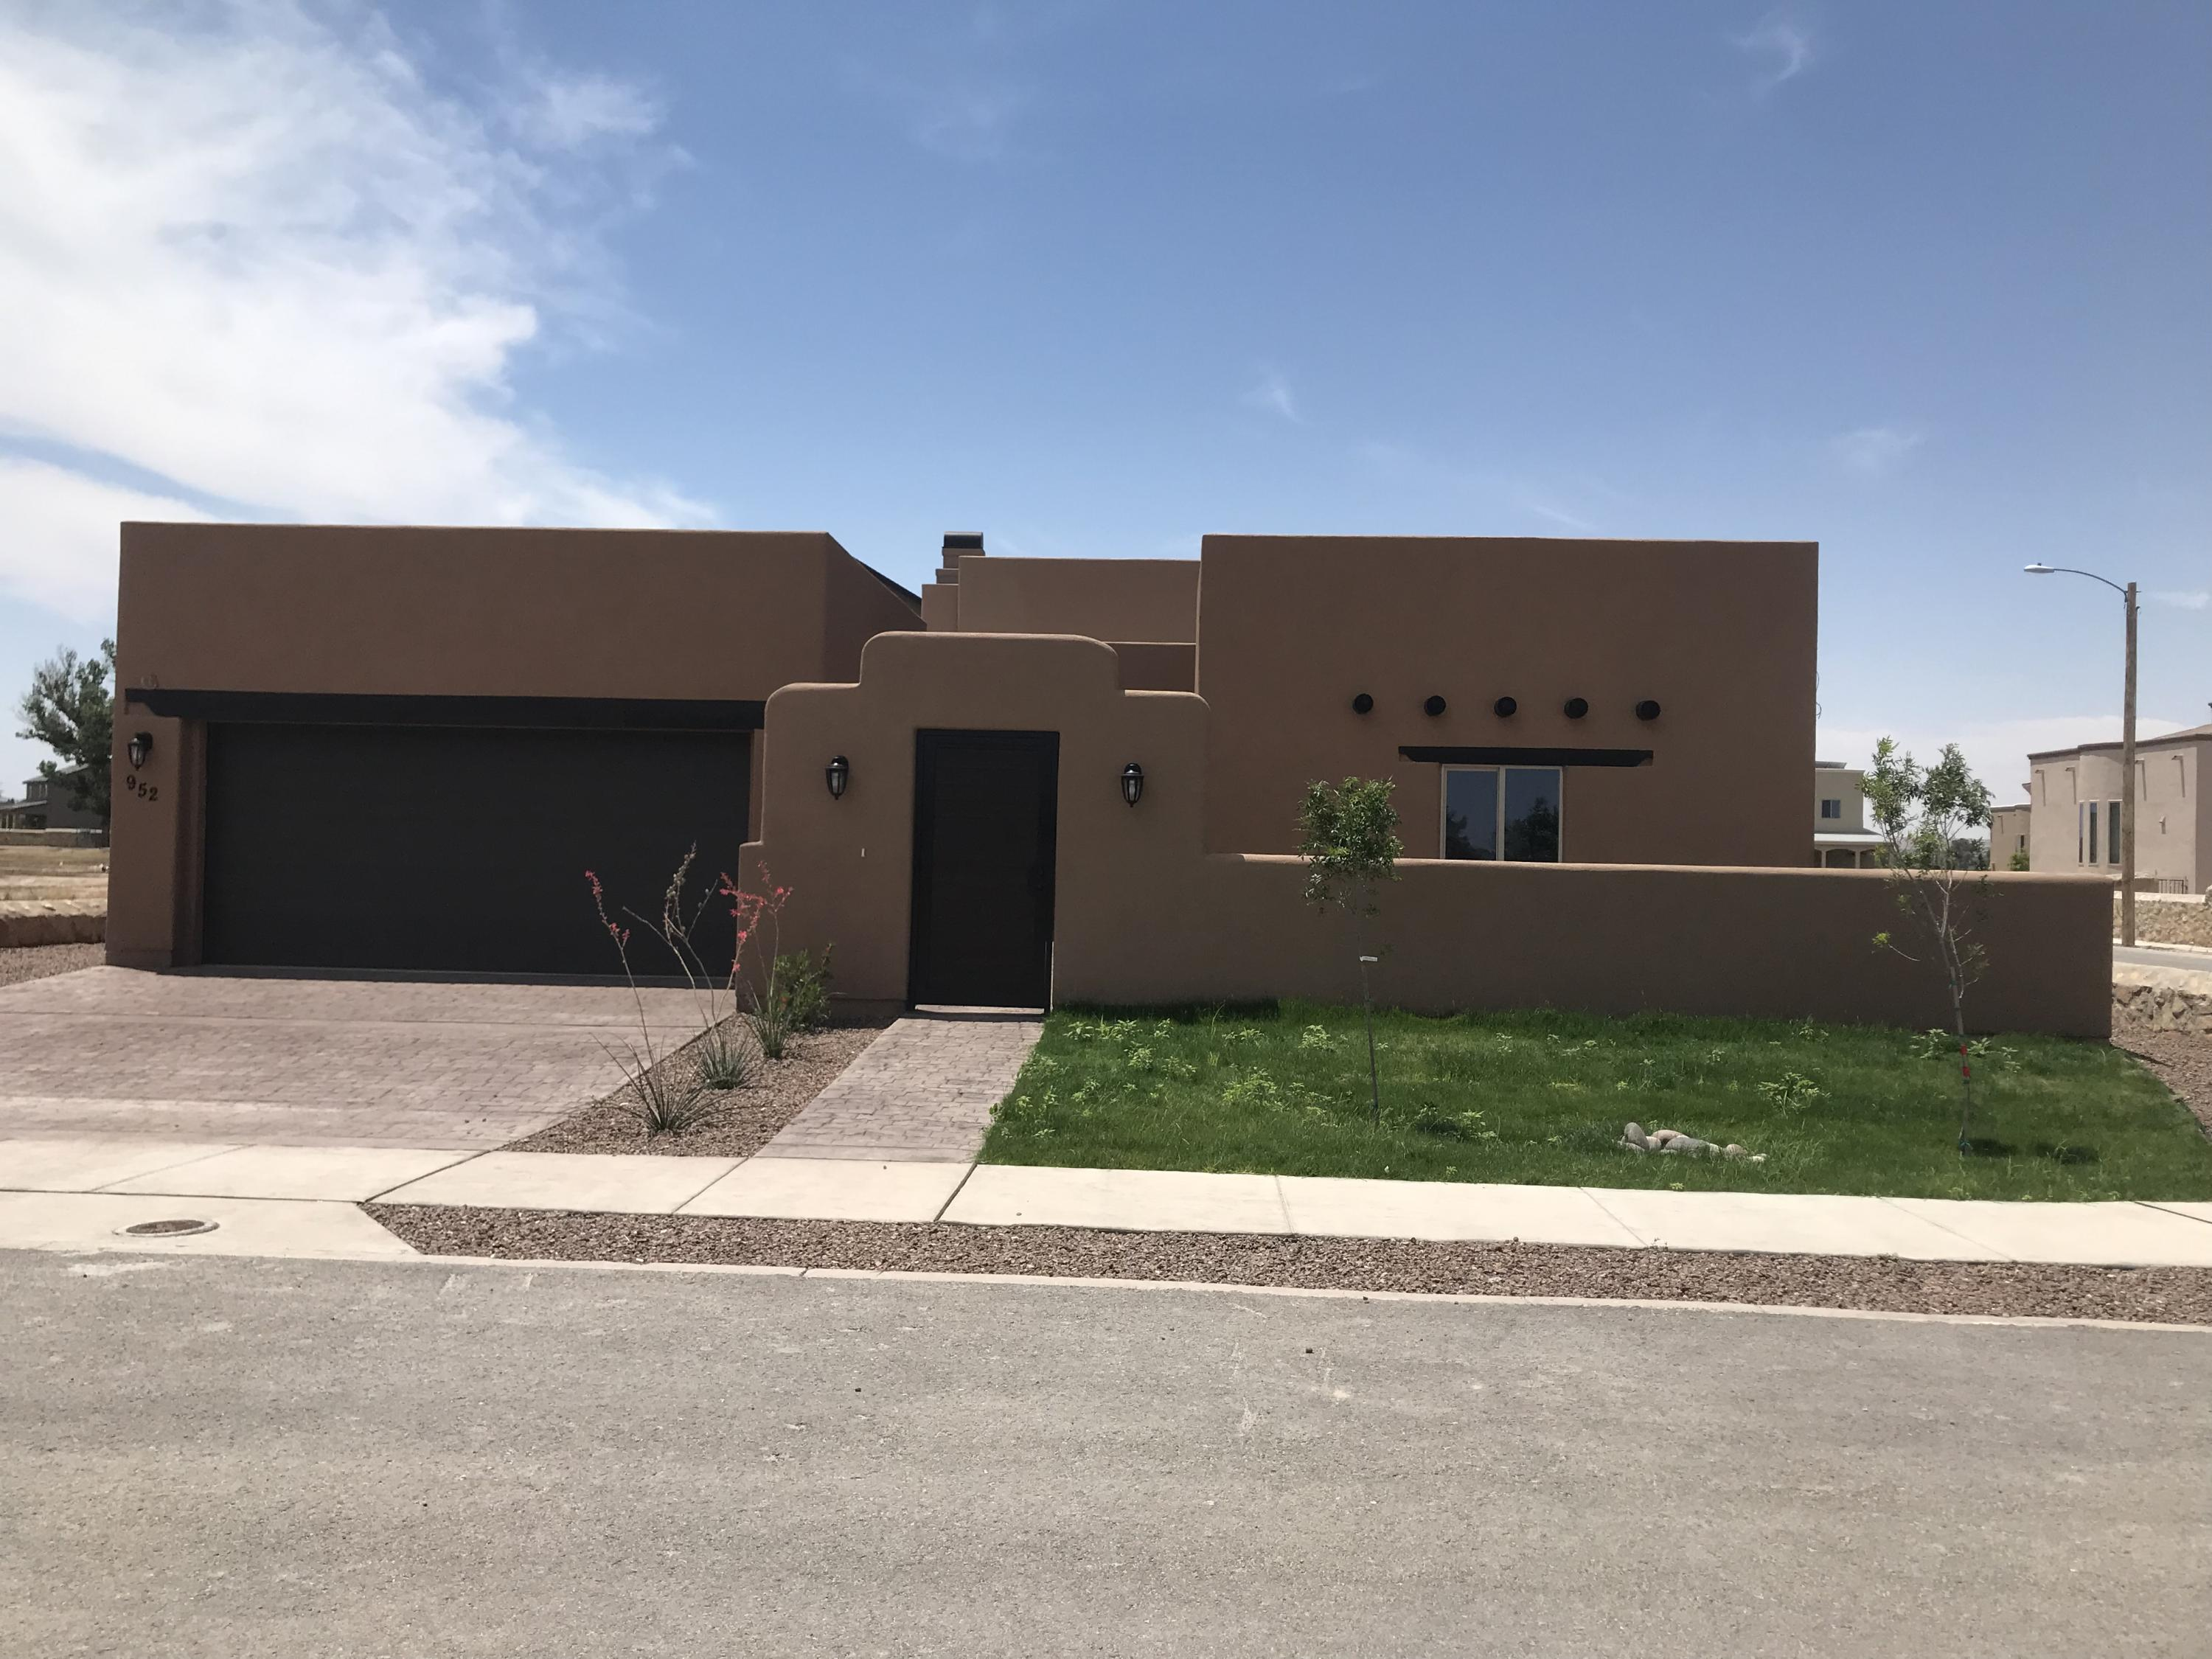 952 ABE GOLDBERG, El Paso, Texas 79932, 4 Bedrooms Bedrooms, ,3 BathroomsBathrooms,Residential,For sale,ABE GOLDBERG,810047